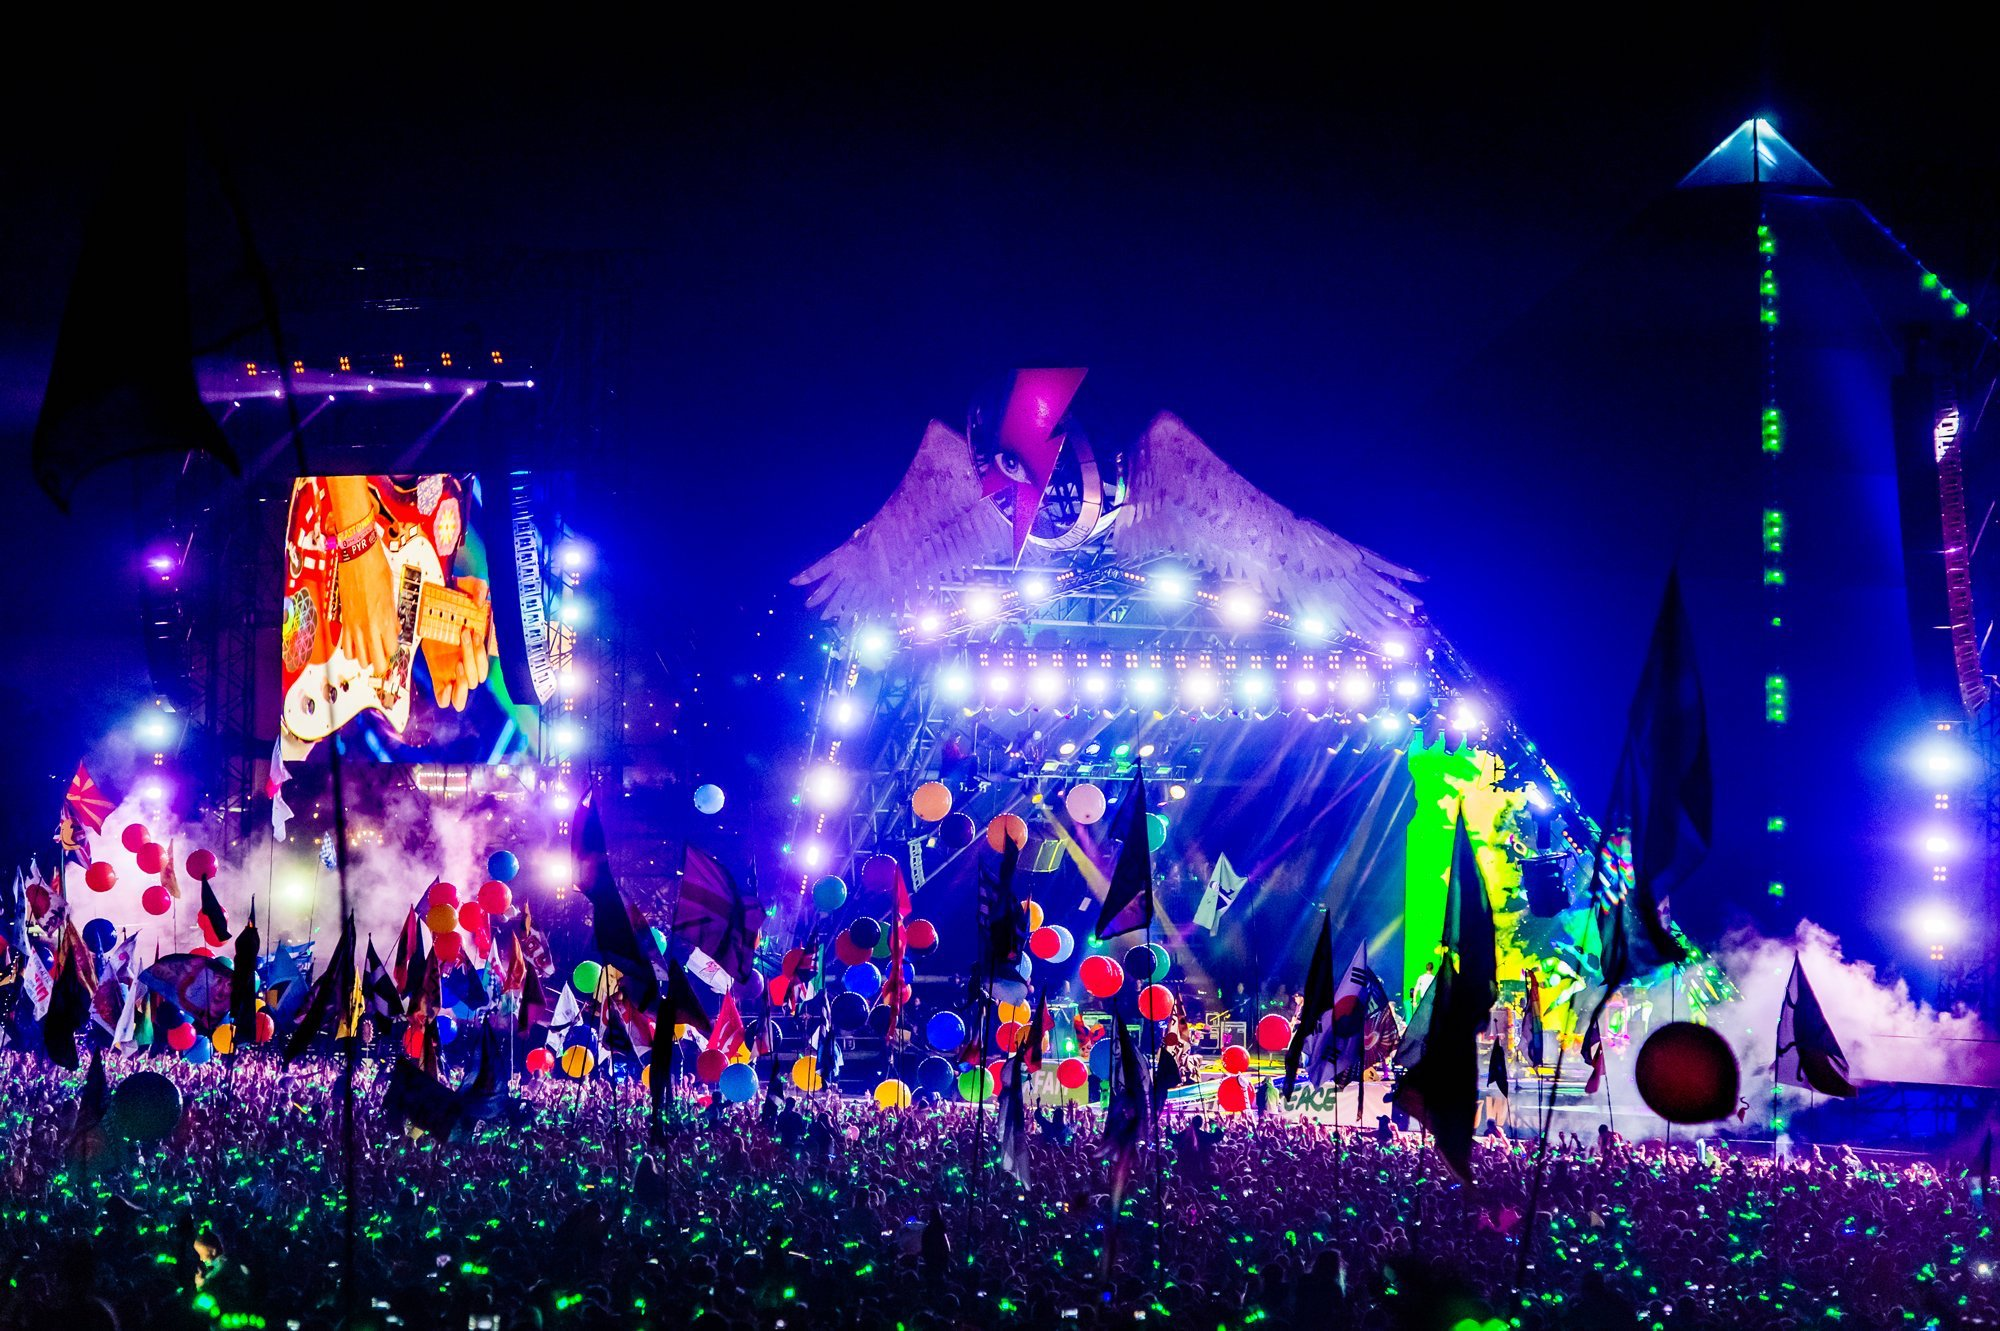 Xylobands at Glastonbury